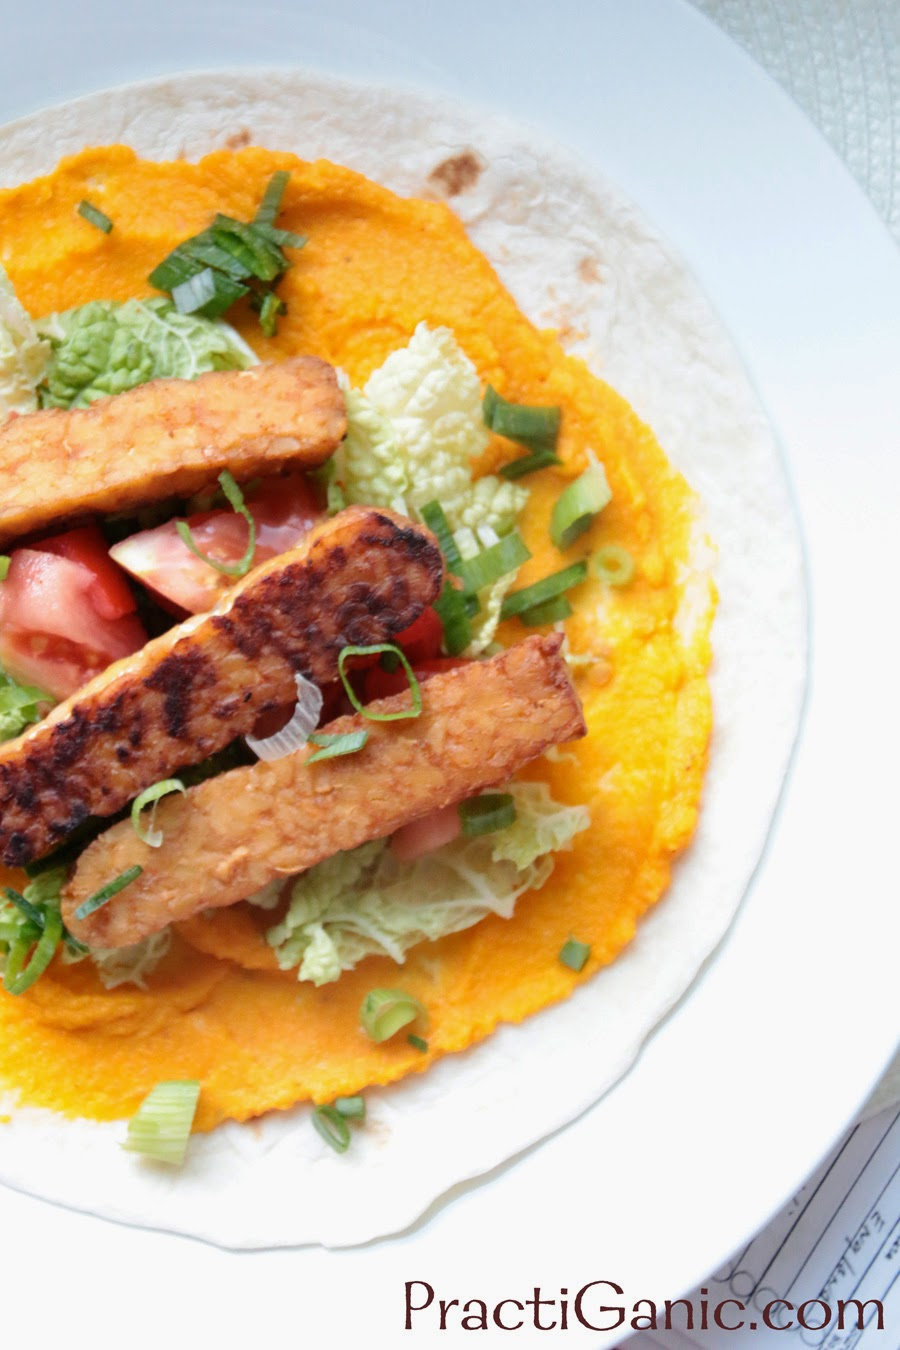 Smoked Tempeh & Spicy Carrot Wraps